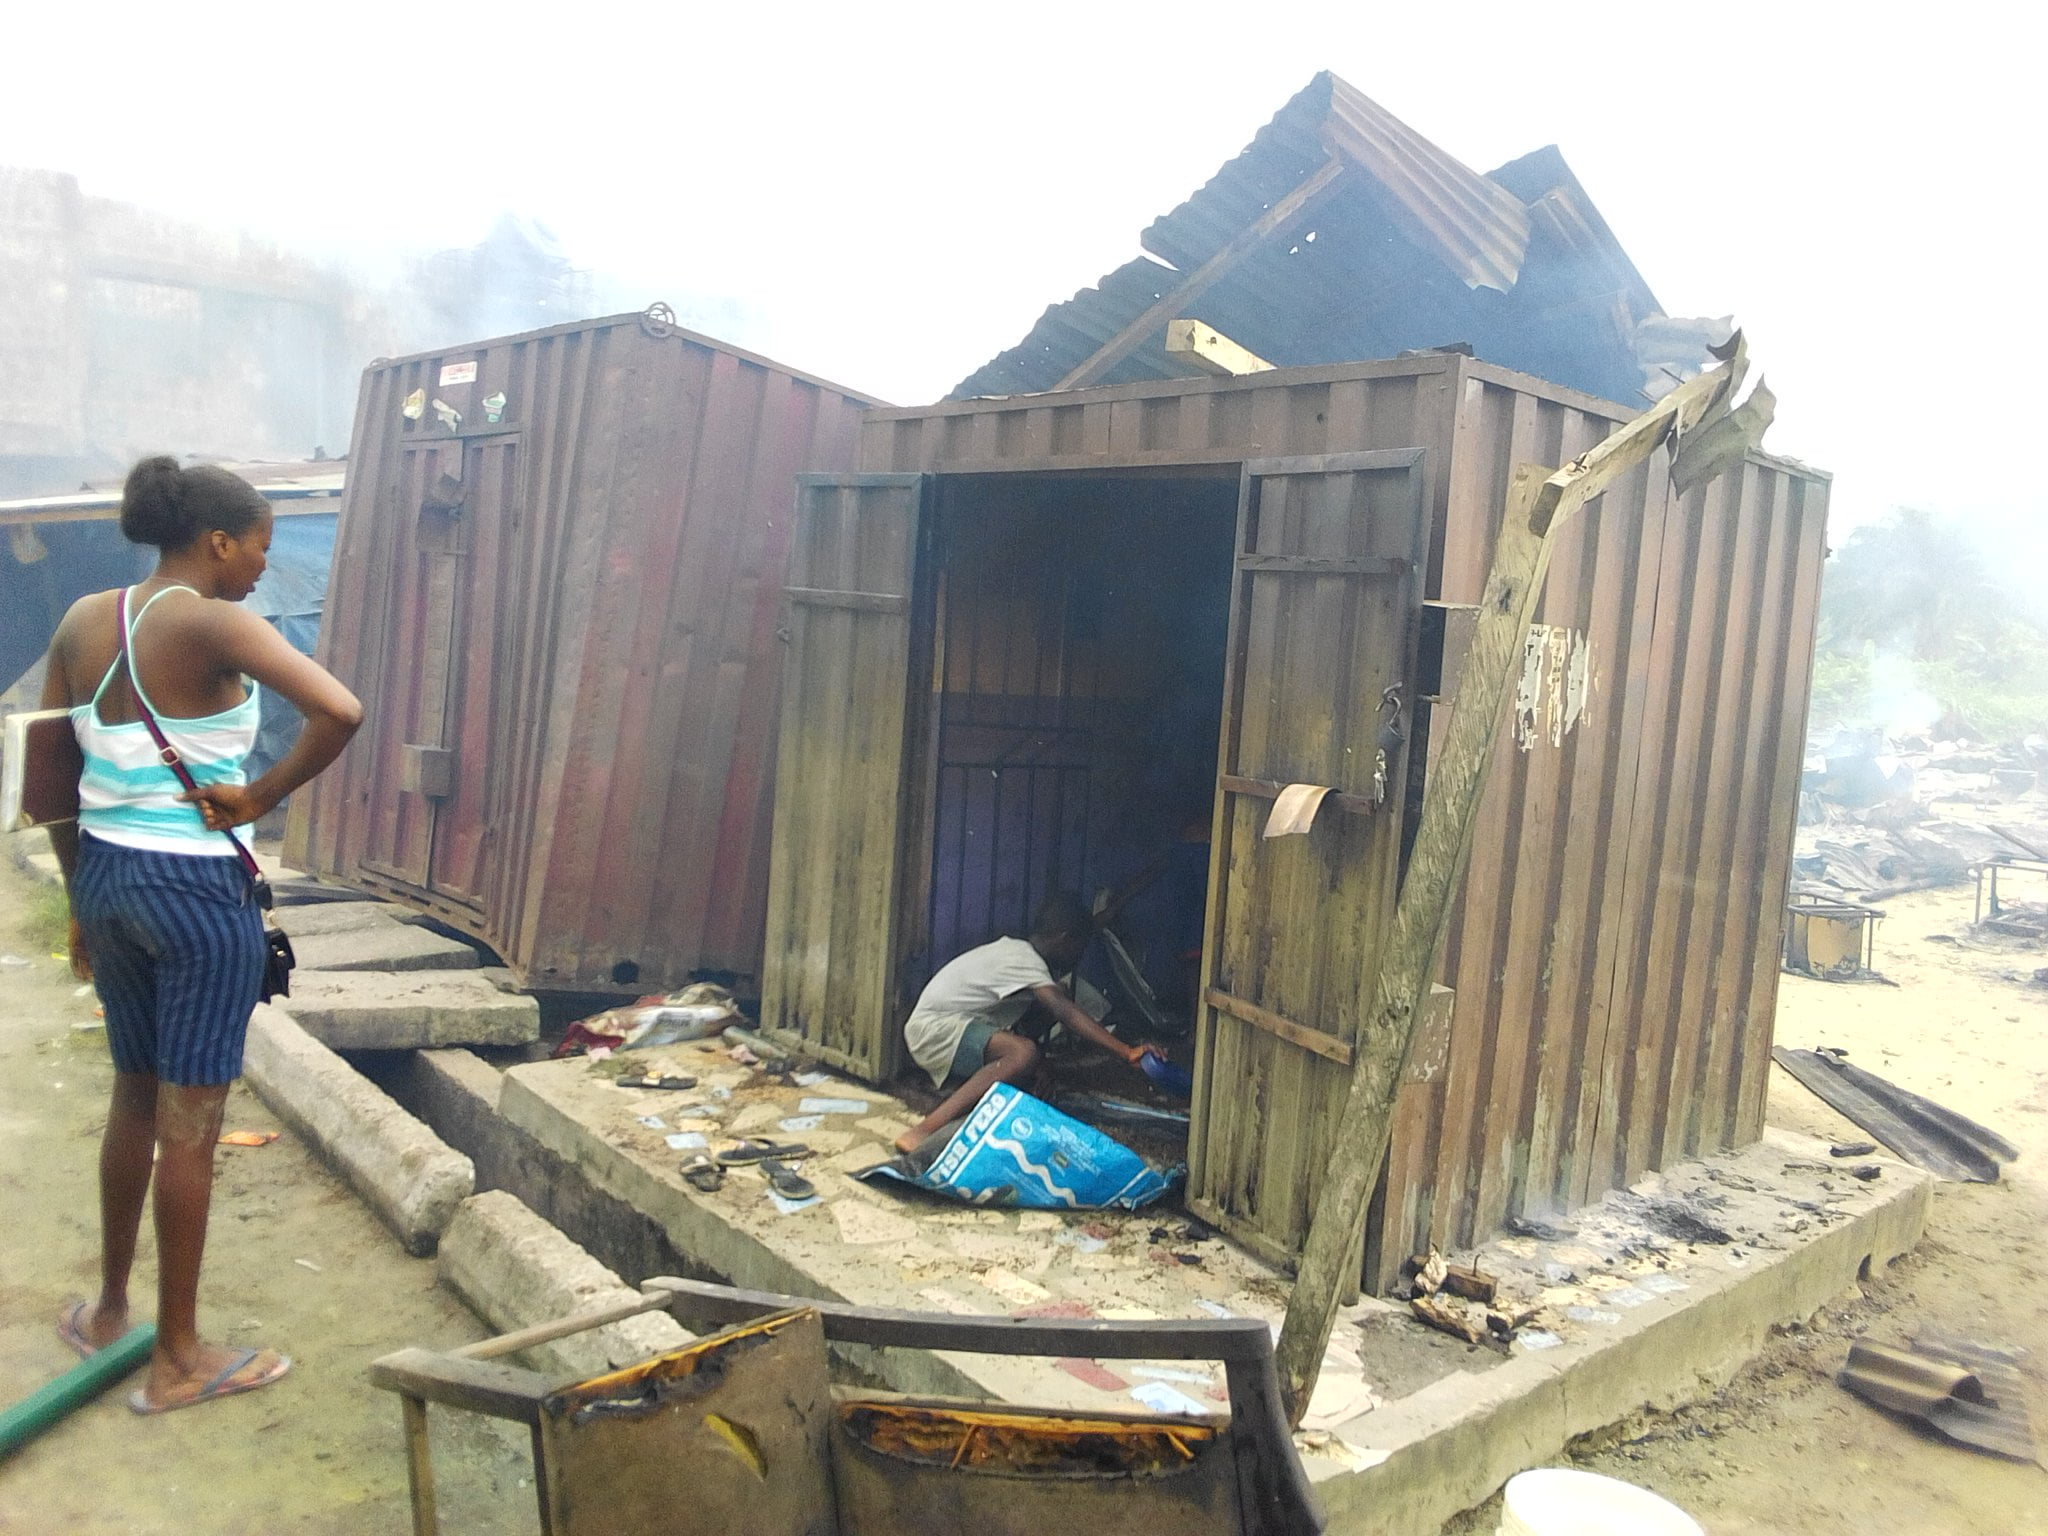 IMG 20190317 161638 - Fire Outbreak Renders Over 20 Families Homeless In Delta State (Photos)